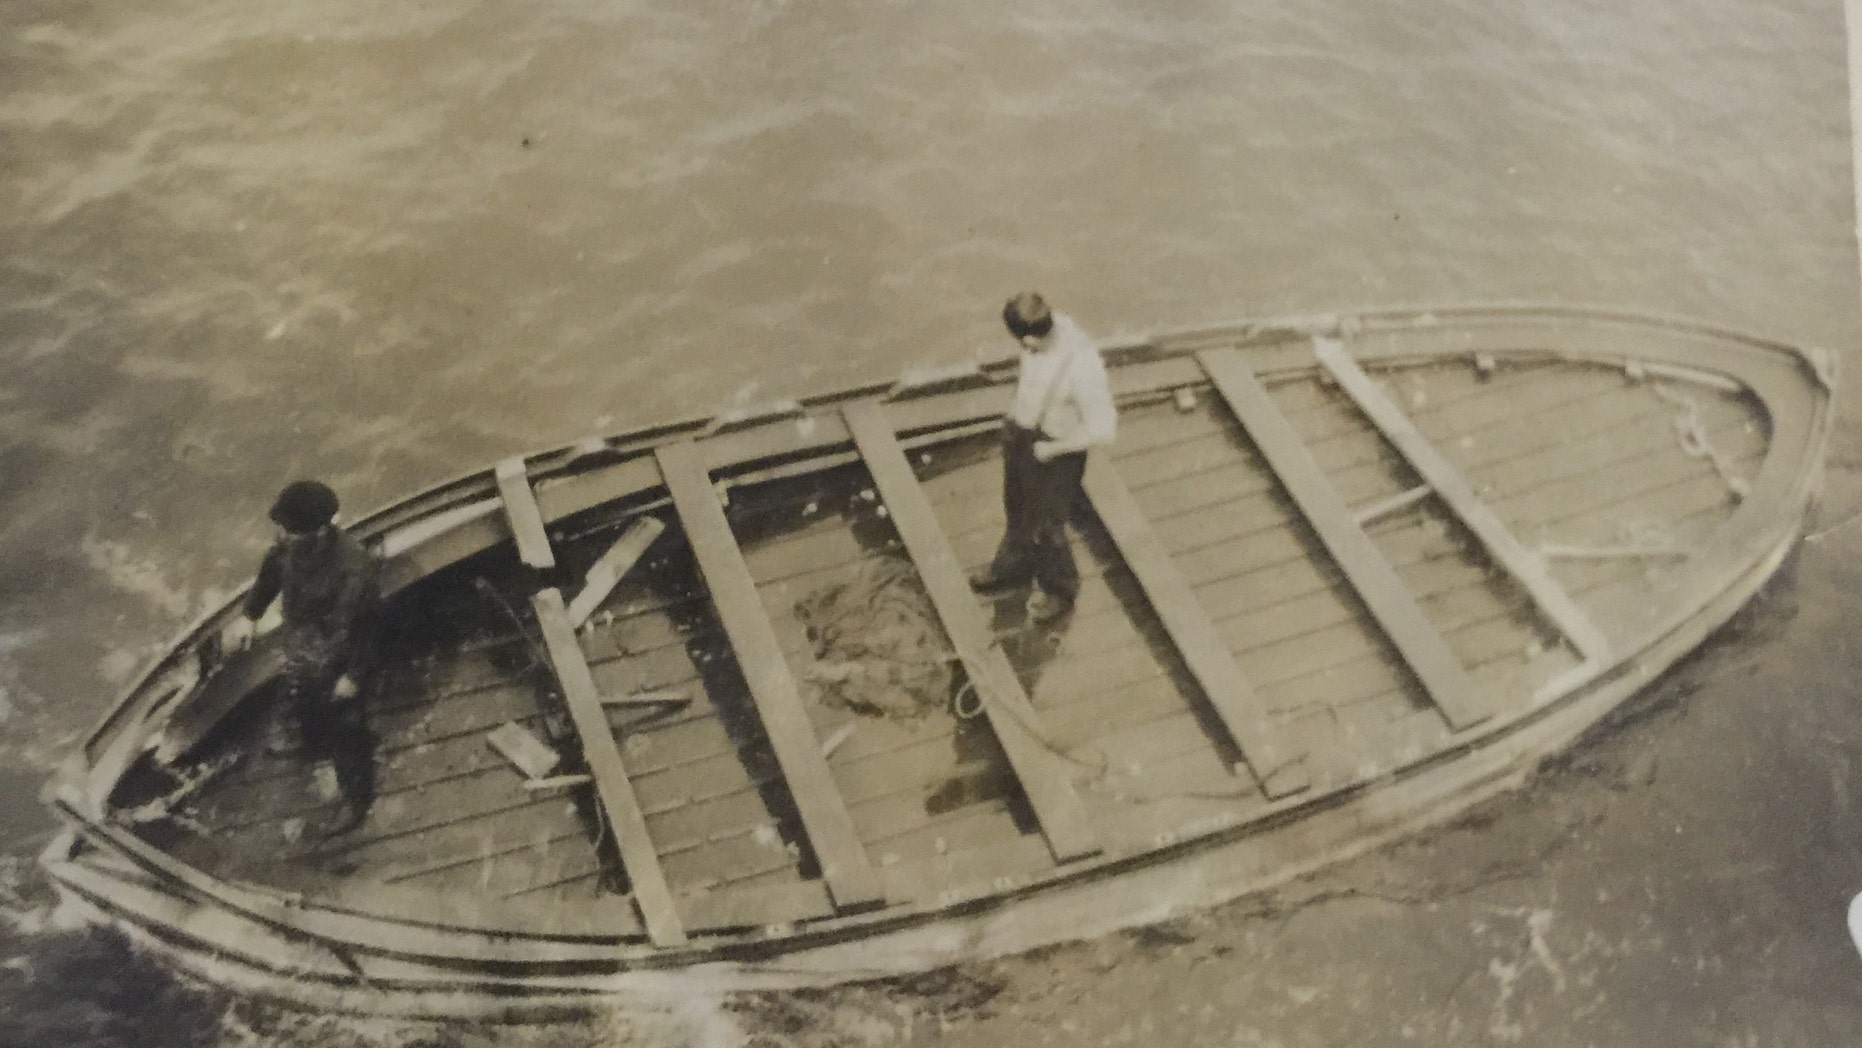 The Titanic lifeboat recovered by crewmembers from RMS Oceanic (Henry Aldridge & Son).